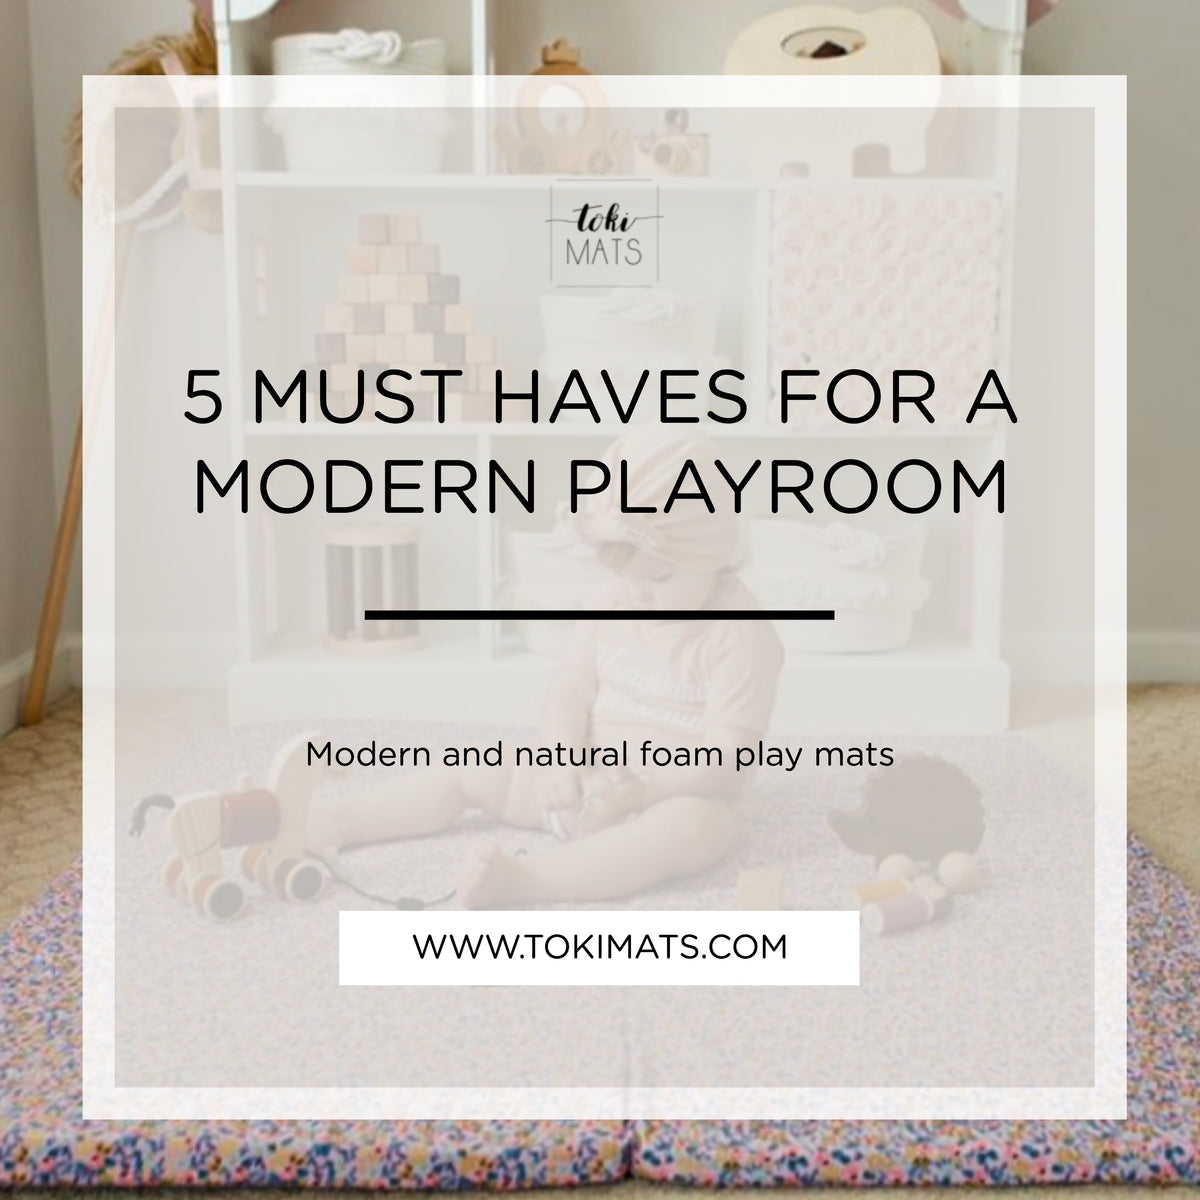 5 MUST HAVES FOR A MODERN PLAYROOM